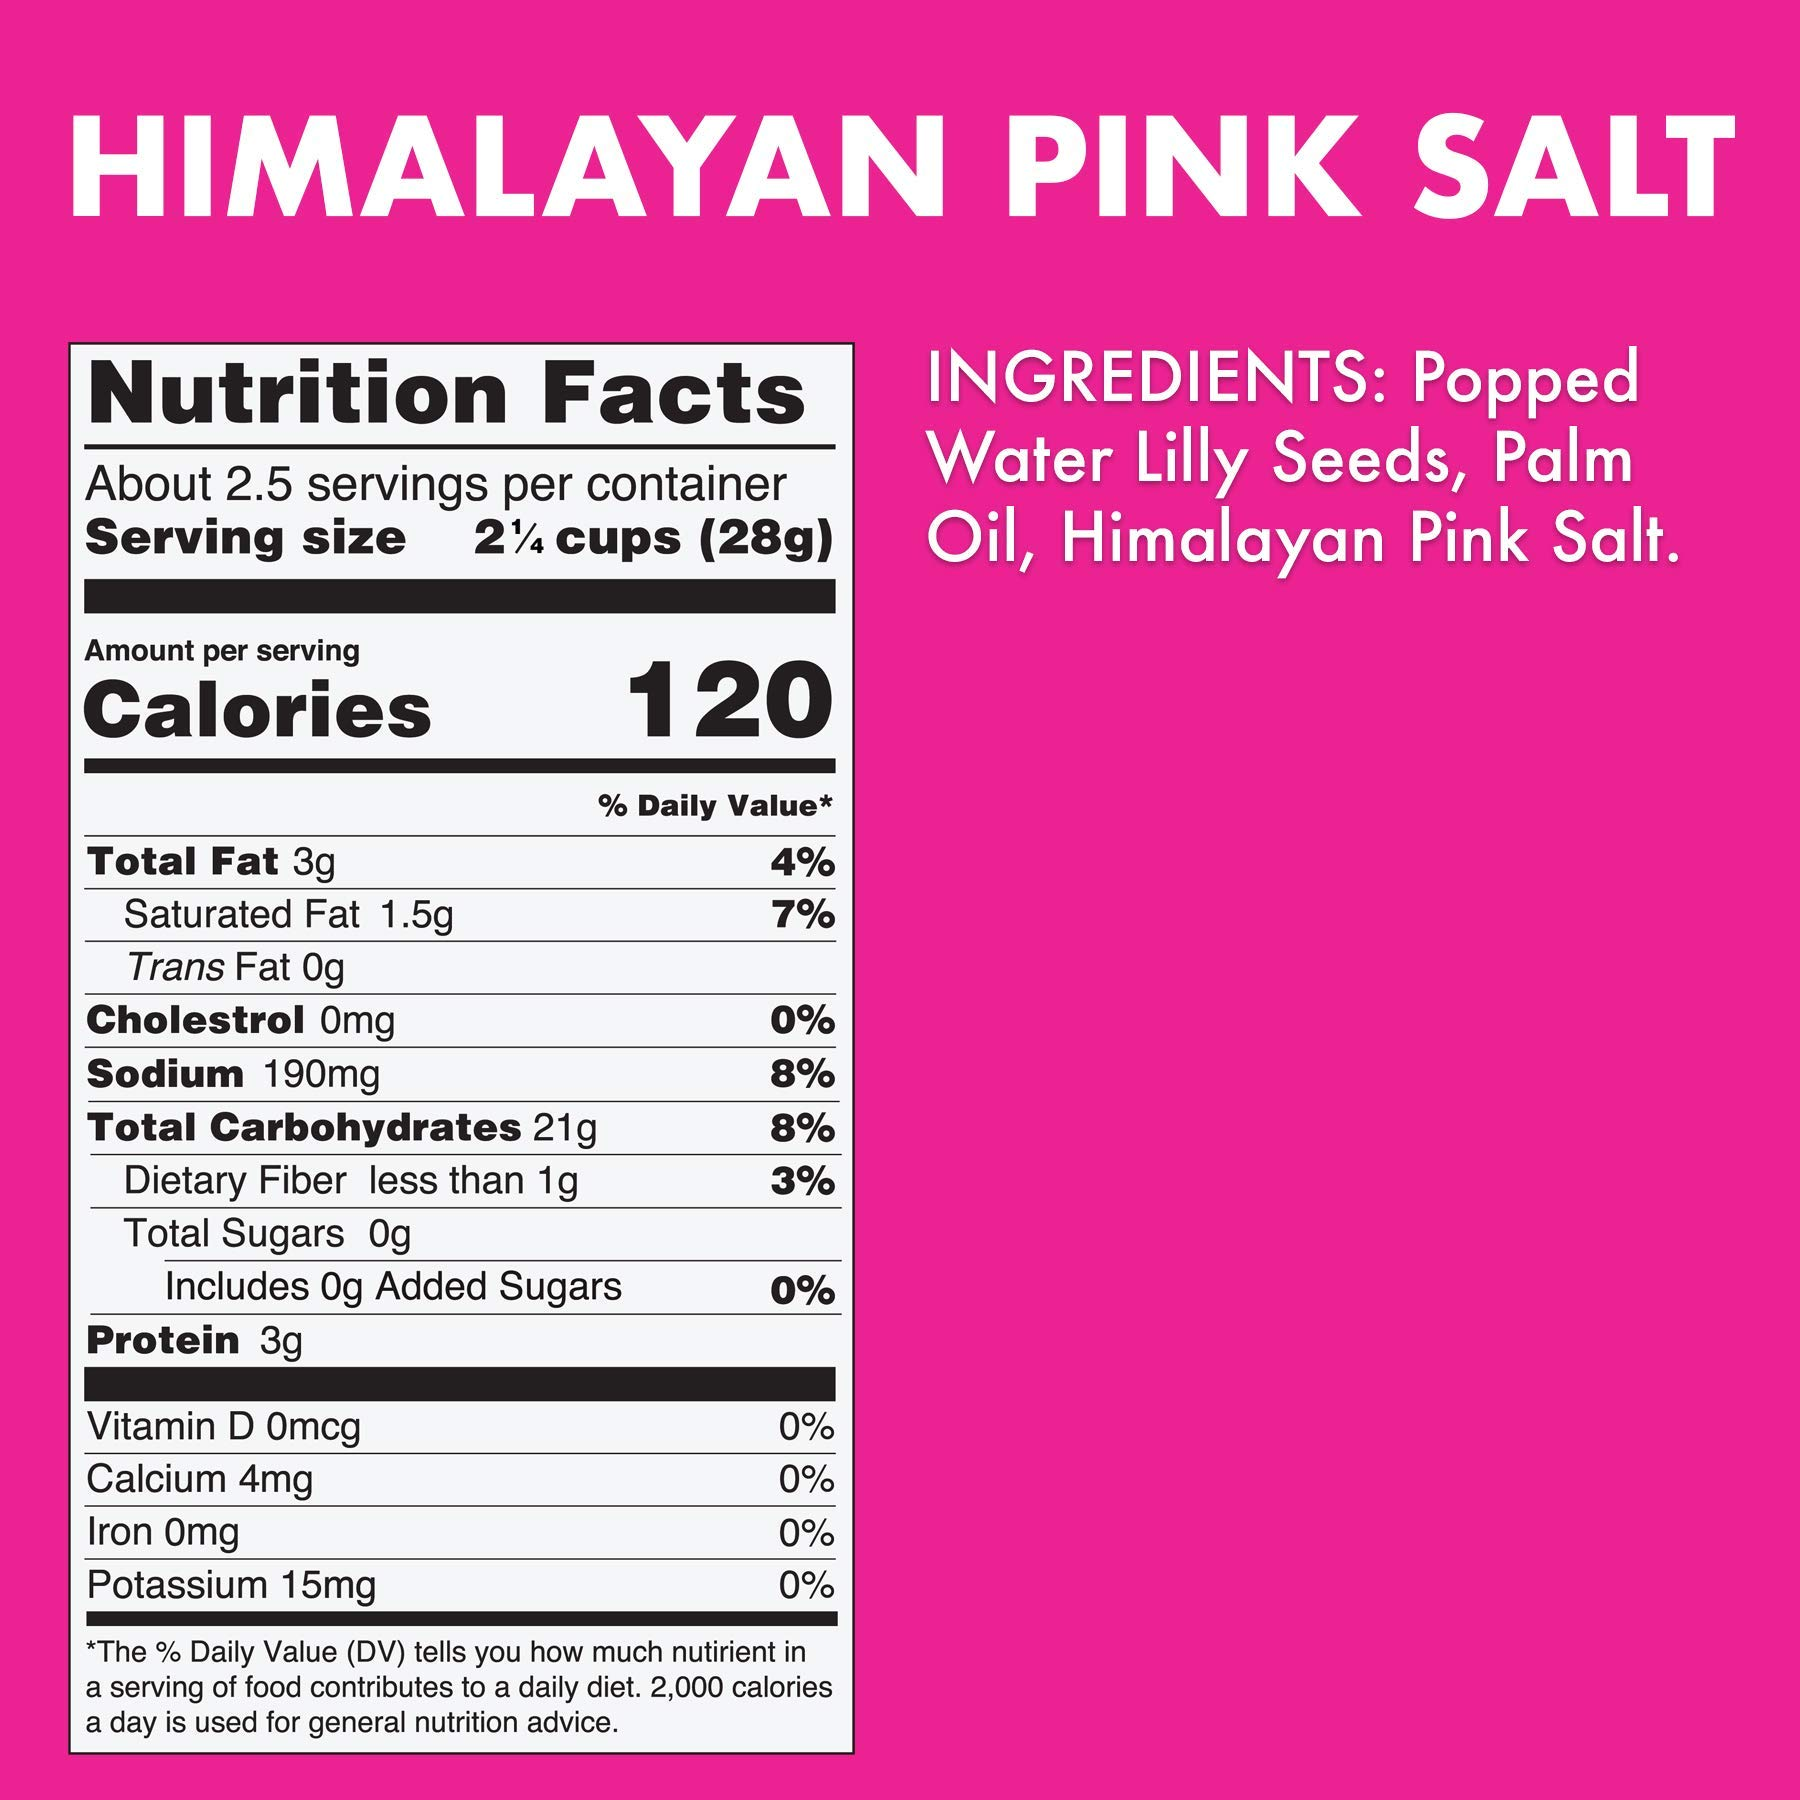 Taali Himalayan Pink Salt Water Lily Pops (4-Pack) - Classic Flavor from the Mountains | Protein-Rich Roasted Snack | Non GMO Verified | 2.3 oz Multi-Serve Bags by Taali (Image #7)